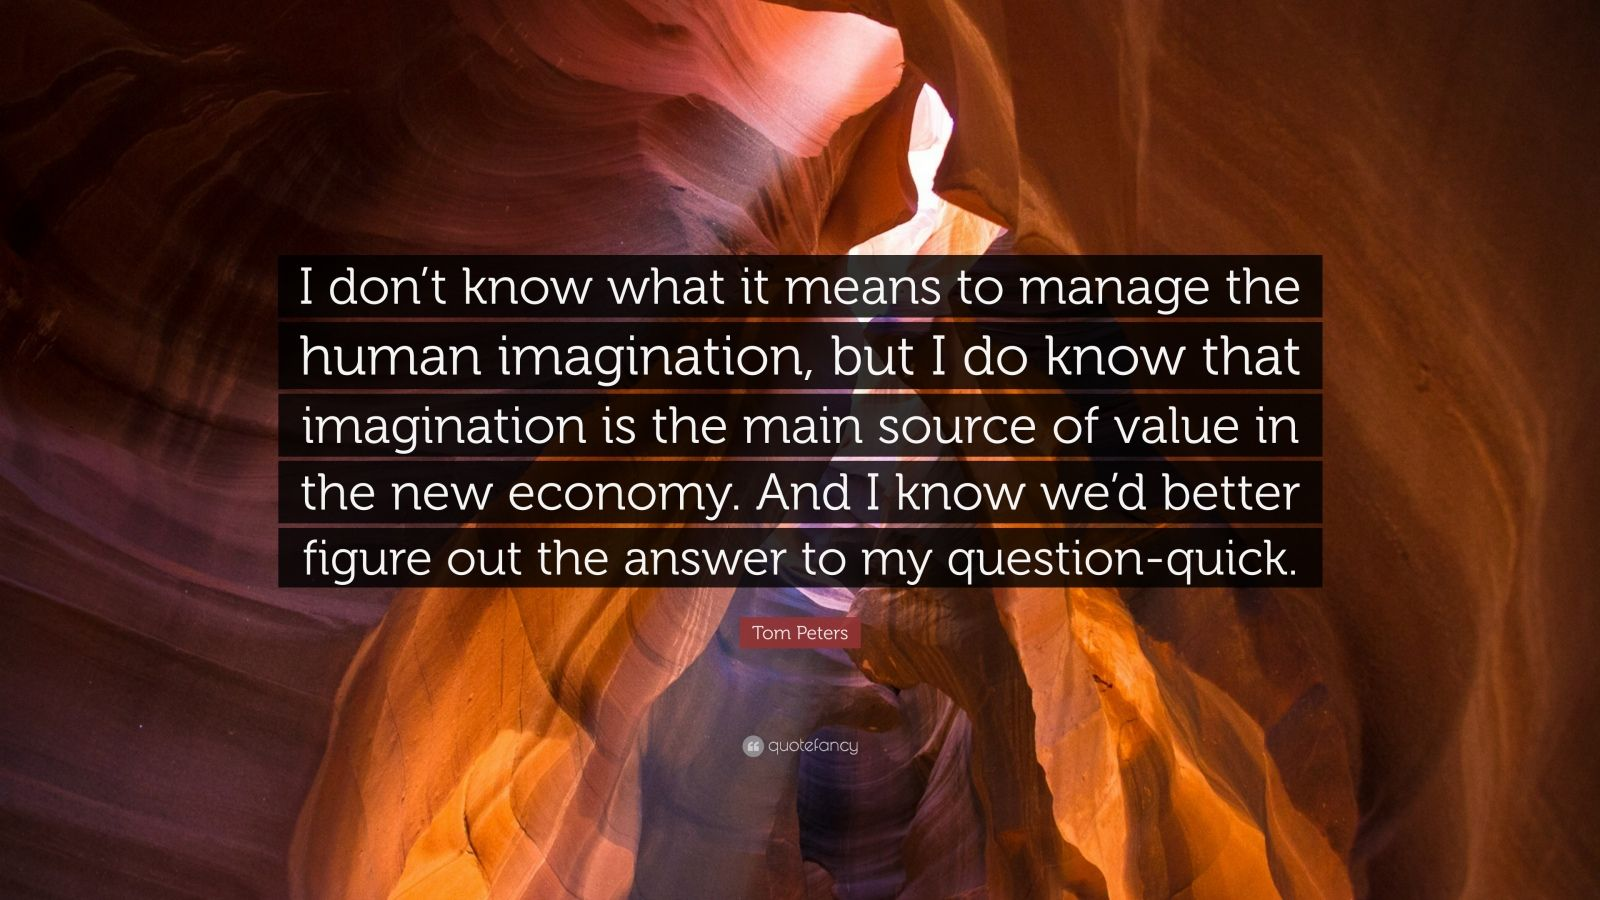 """Tom Peters Quote: """"I don't know what it means to manage the human imagination, but I do know that imagination is the main source of value in the new economy. And I know we'd better figure out the answer to my question-quick."""""""